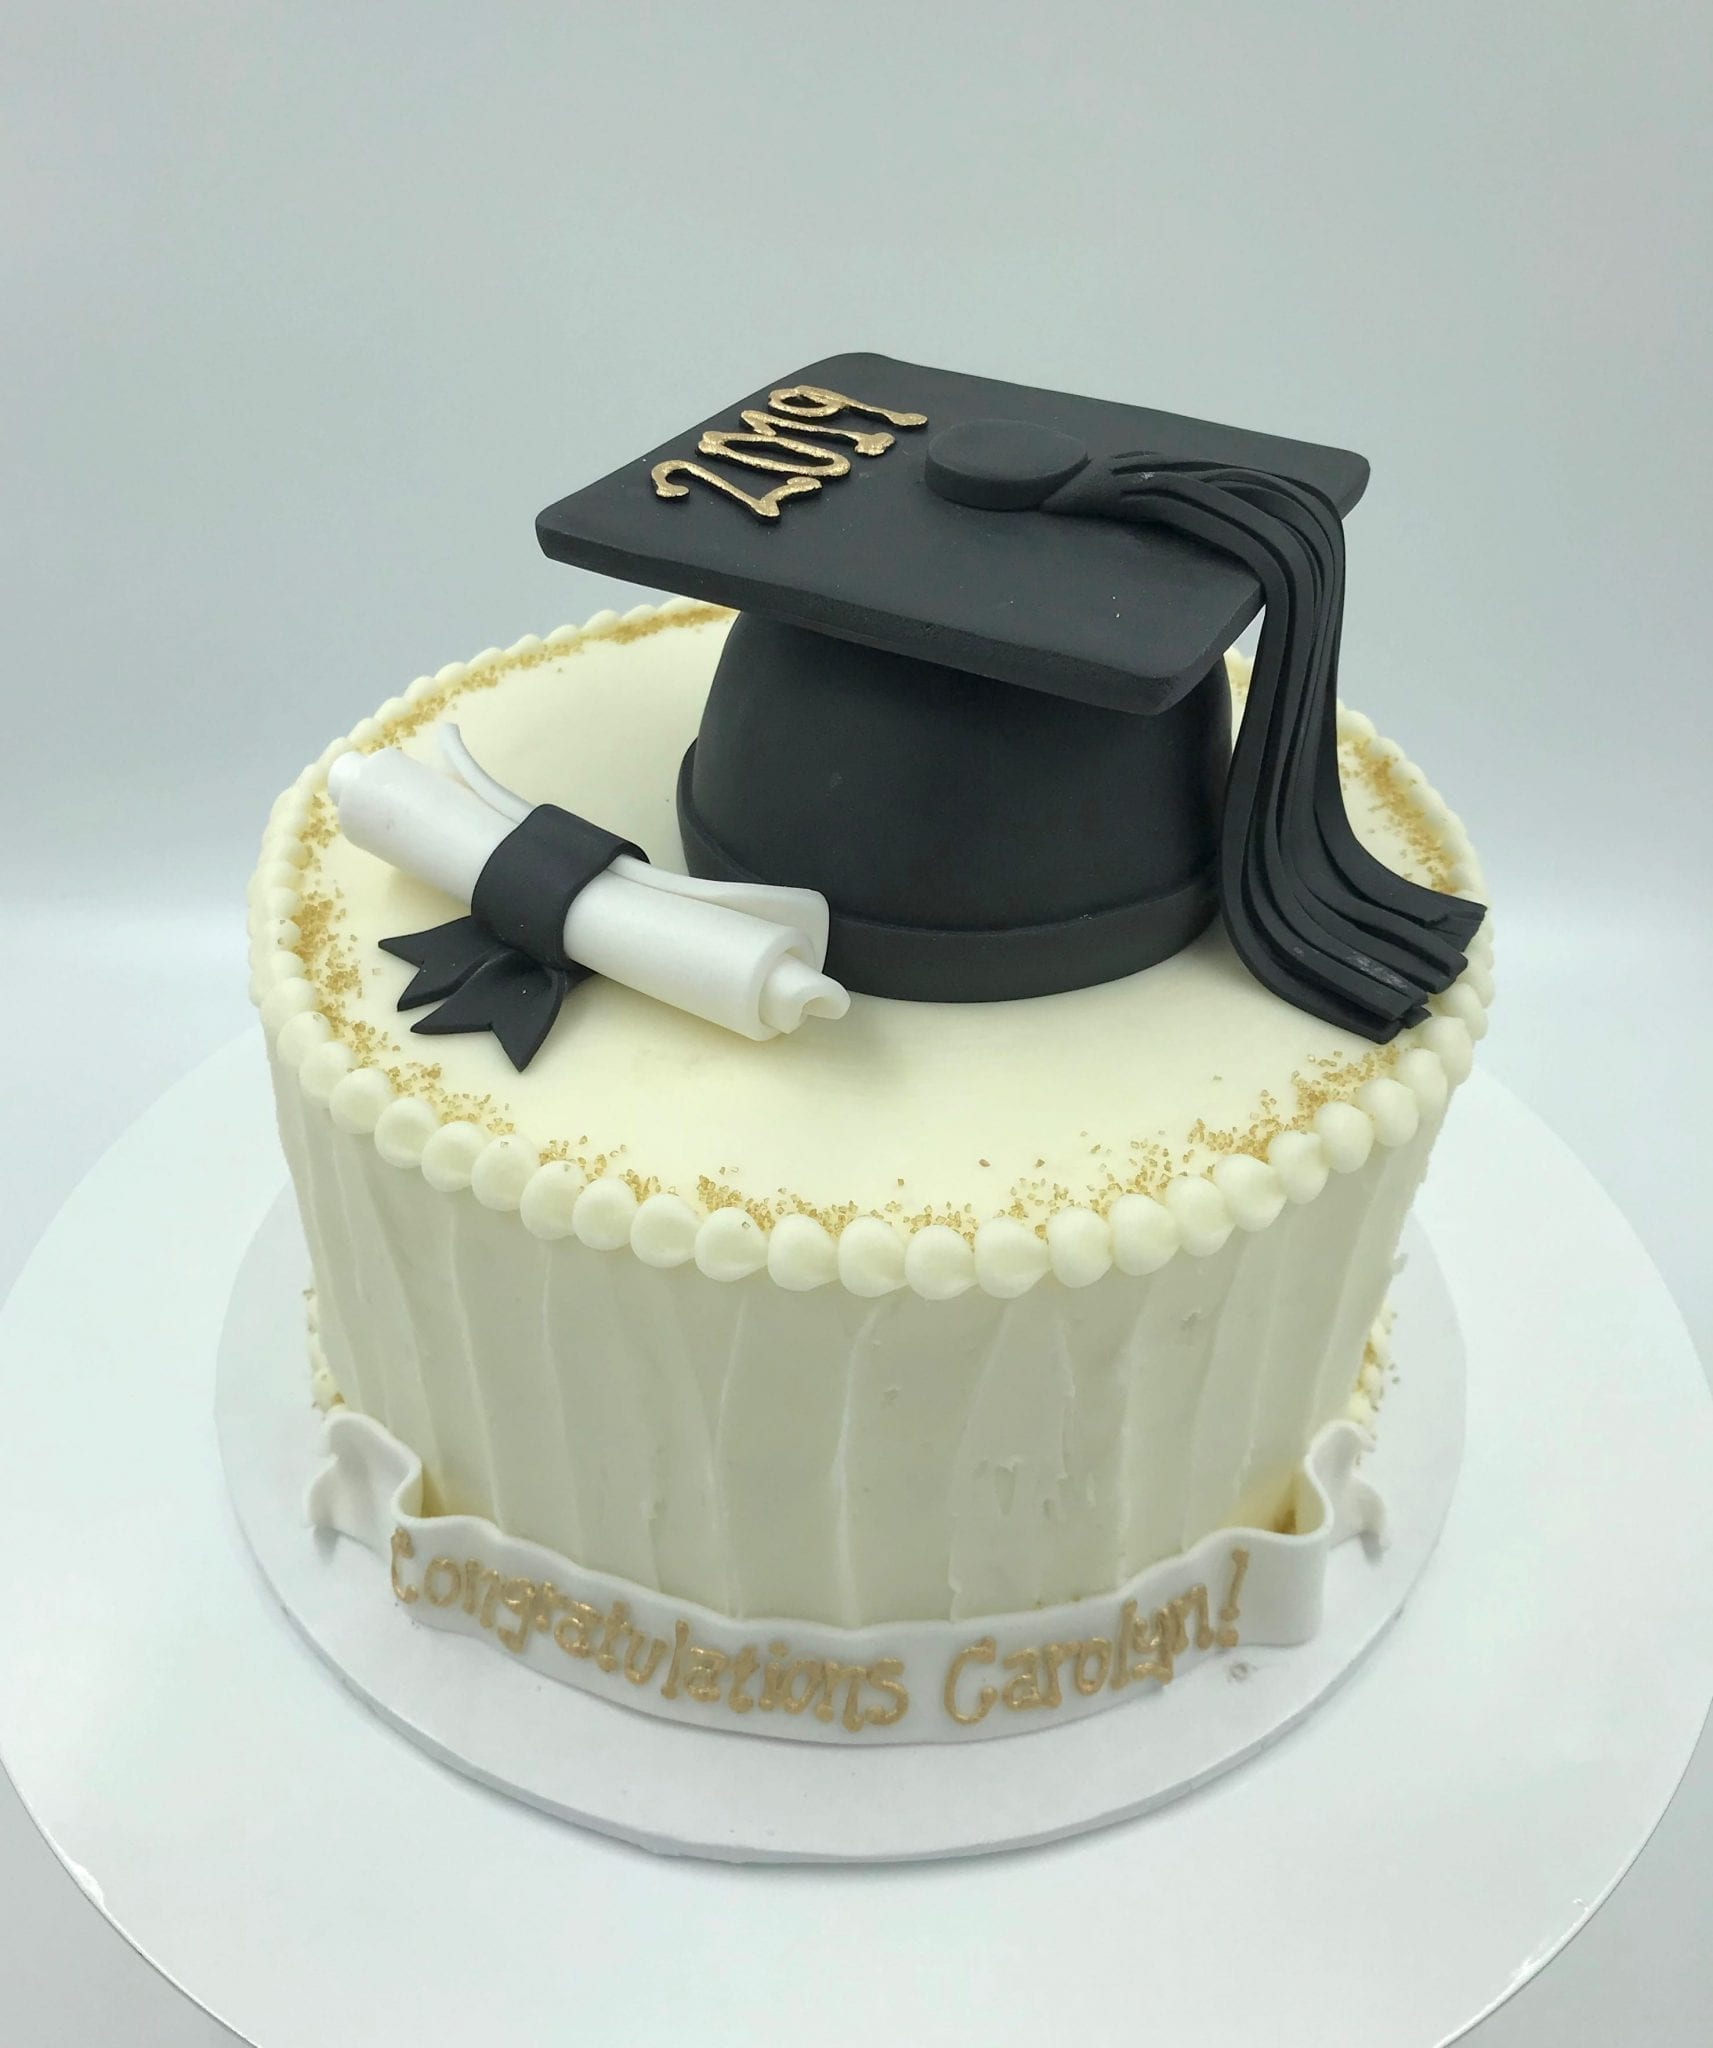 Gold and White Graduation Cake | 3 Sweet Girls Cakery